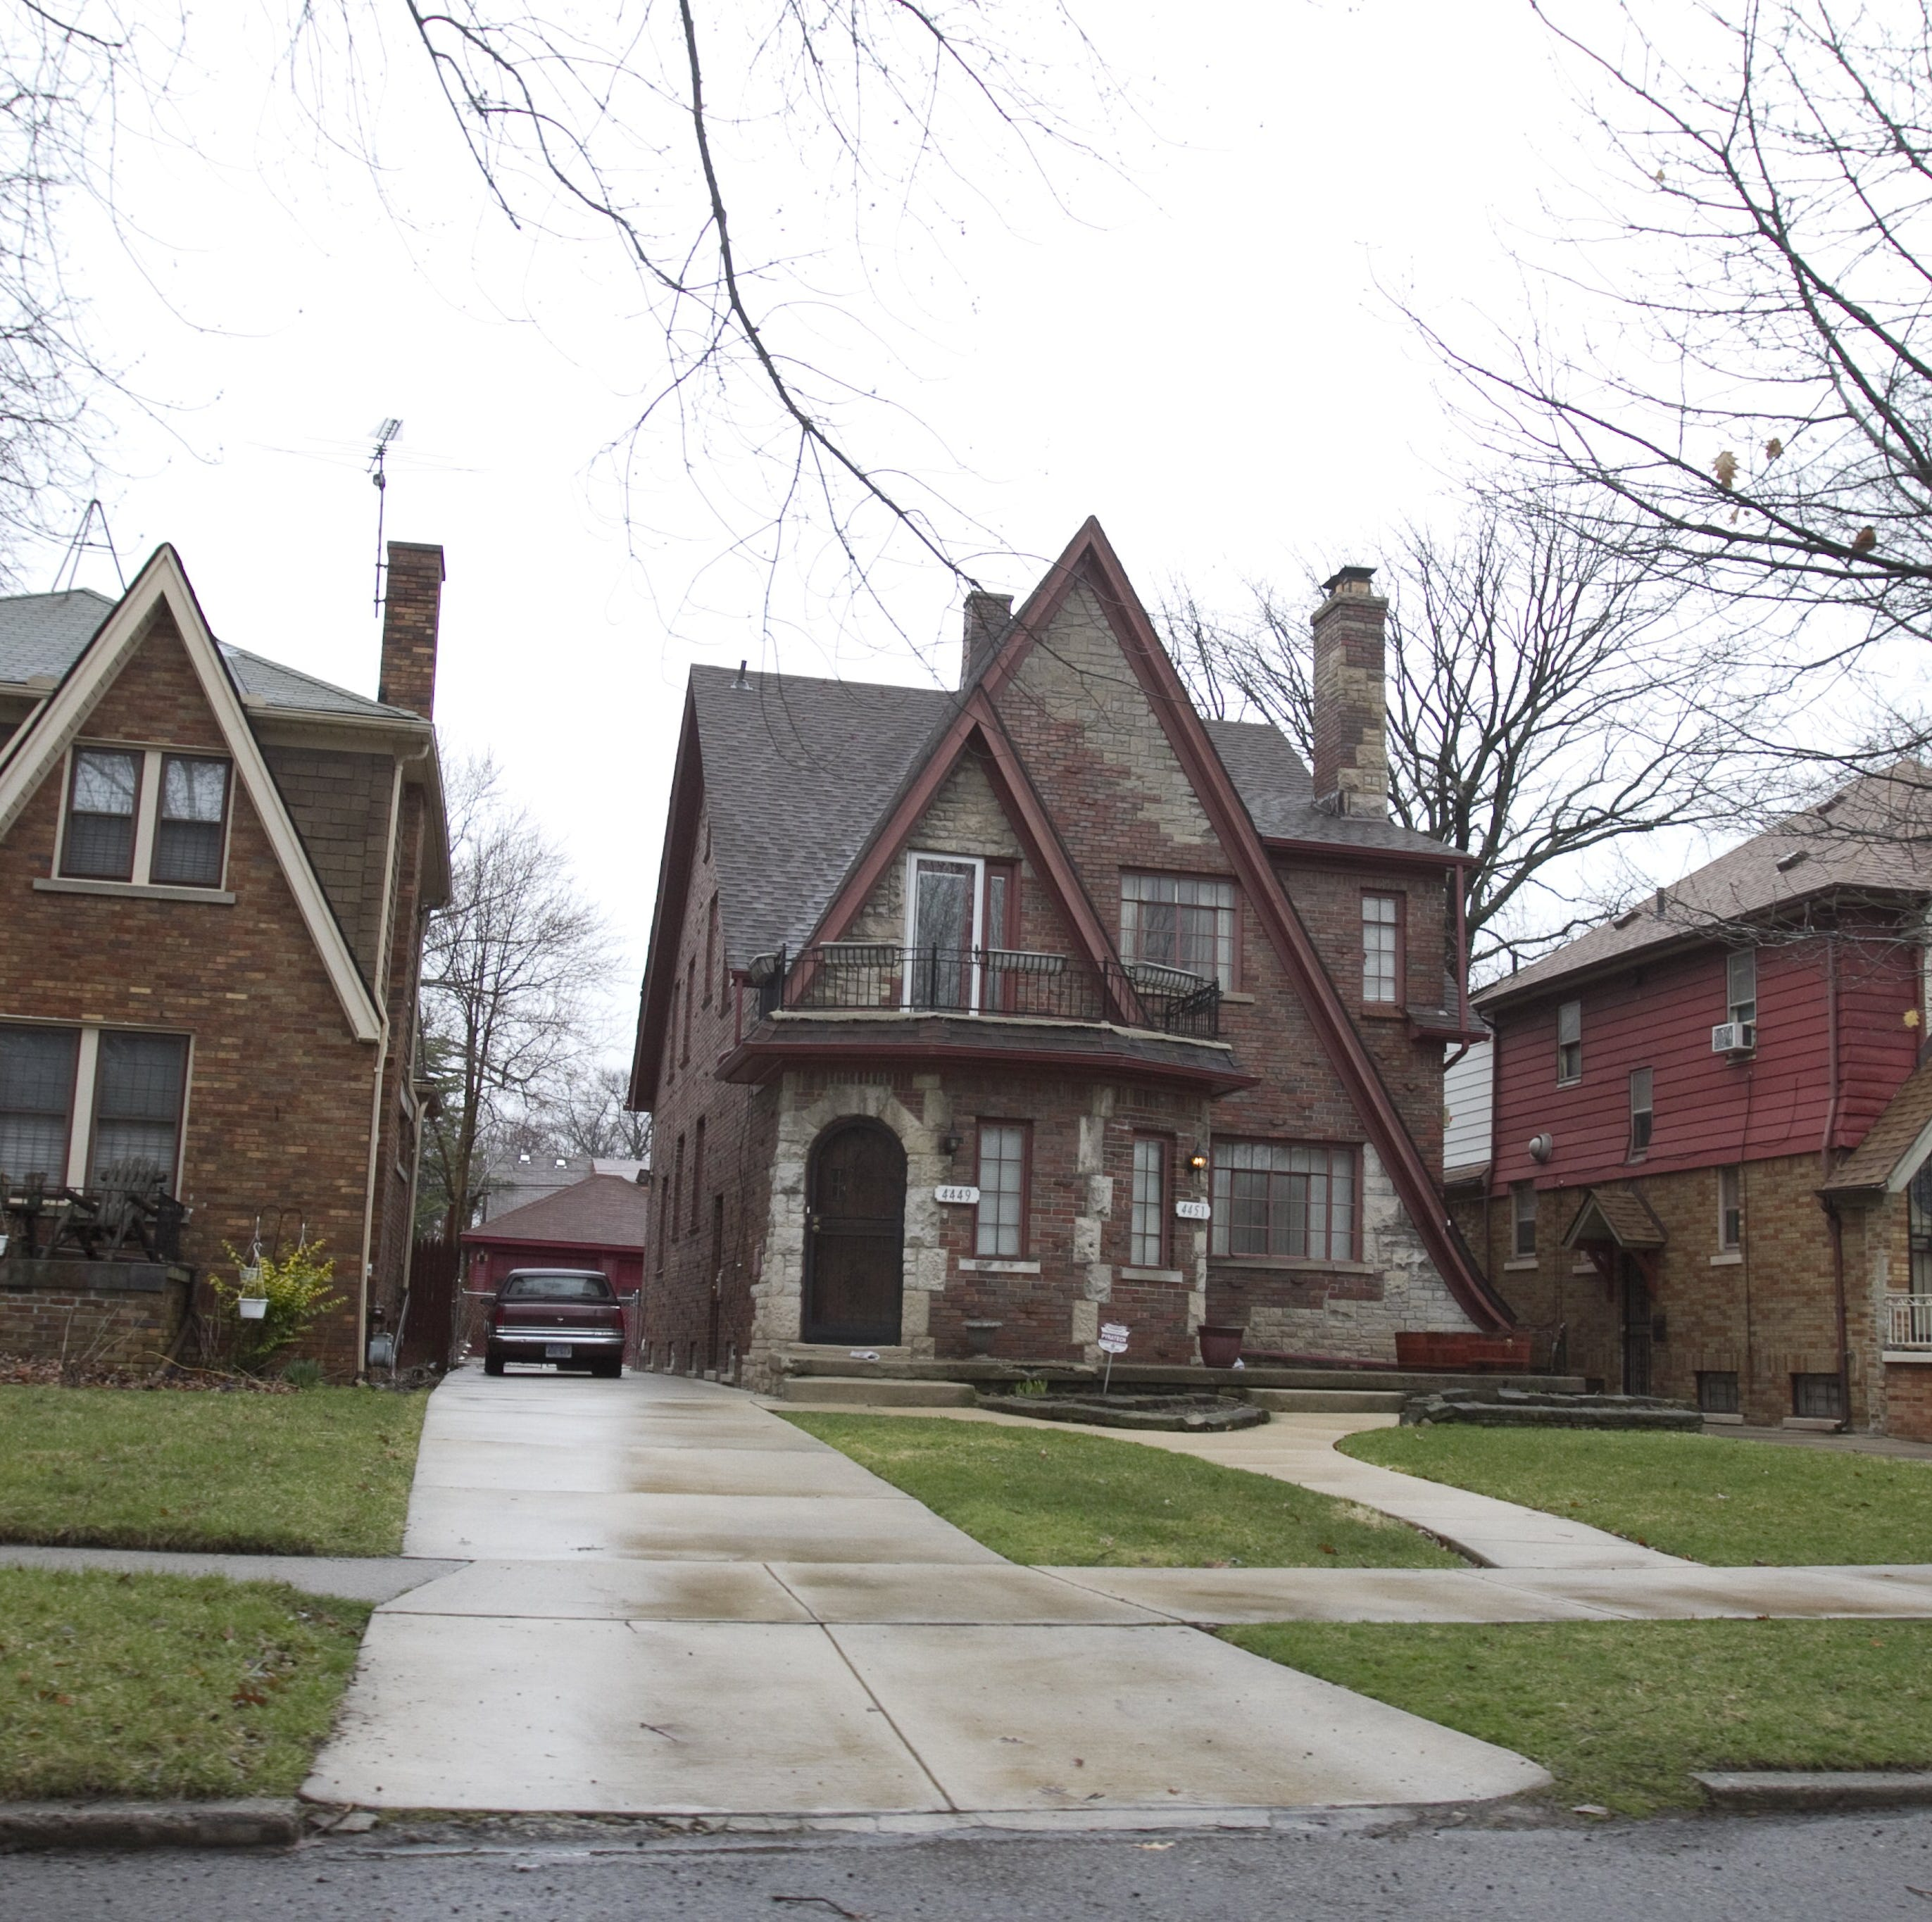 East English Village gets an A rating in national neighborhood report